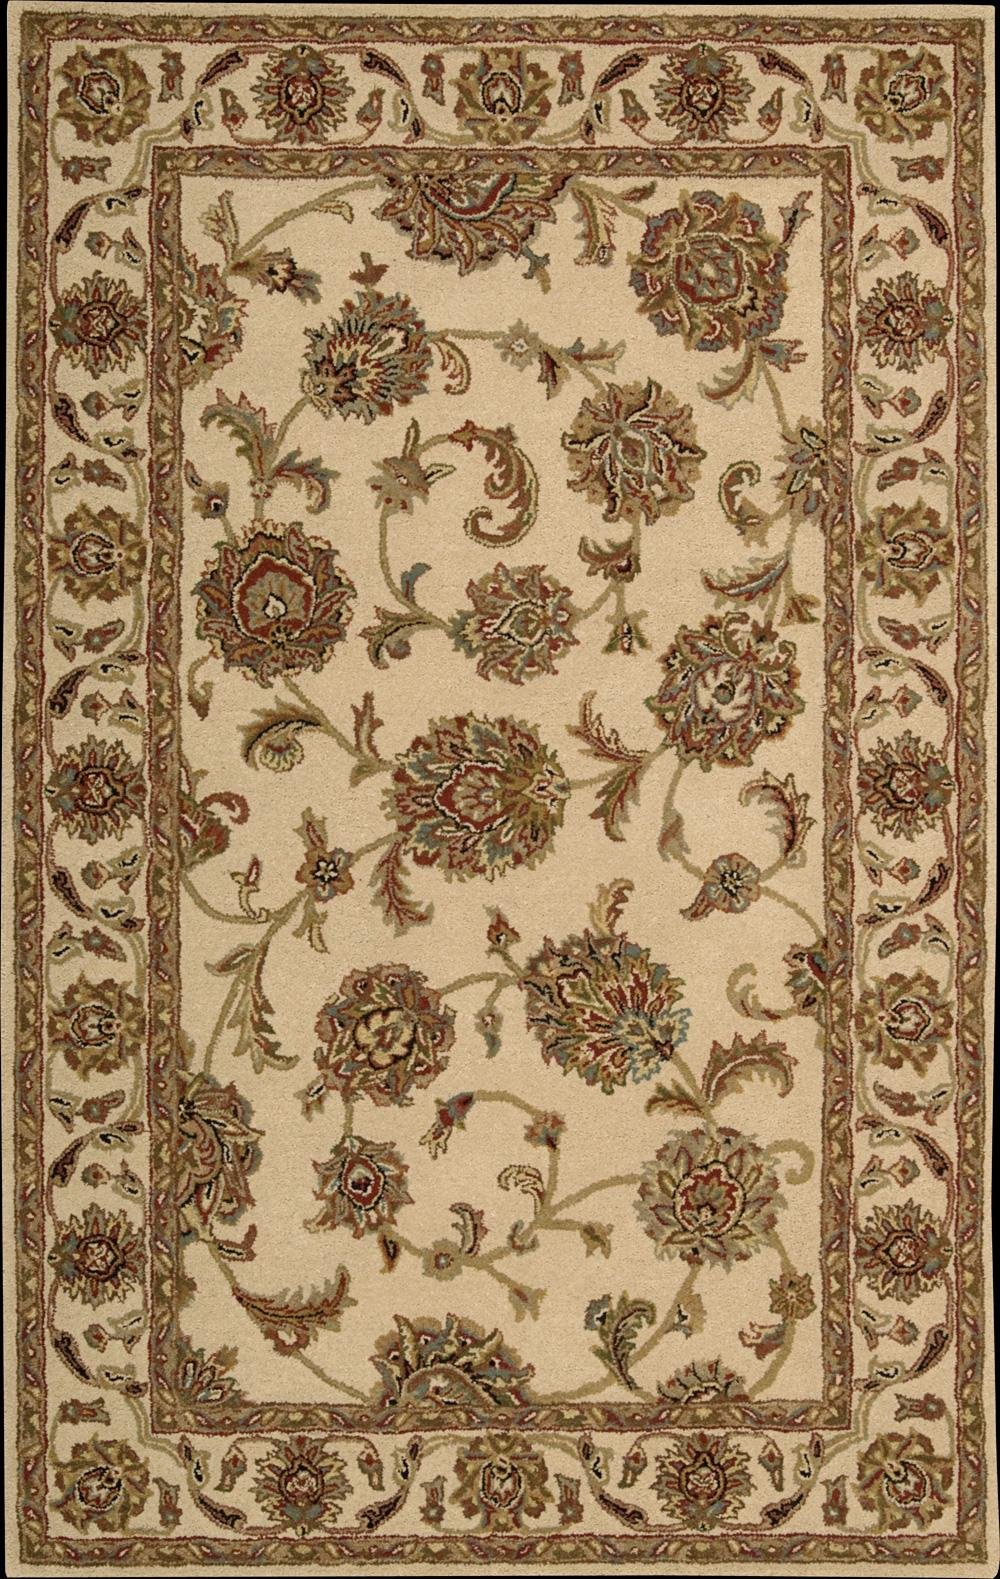 """Nourison India House Area Rug 2'6"""" x 4' - Item Number: 41457"""